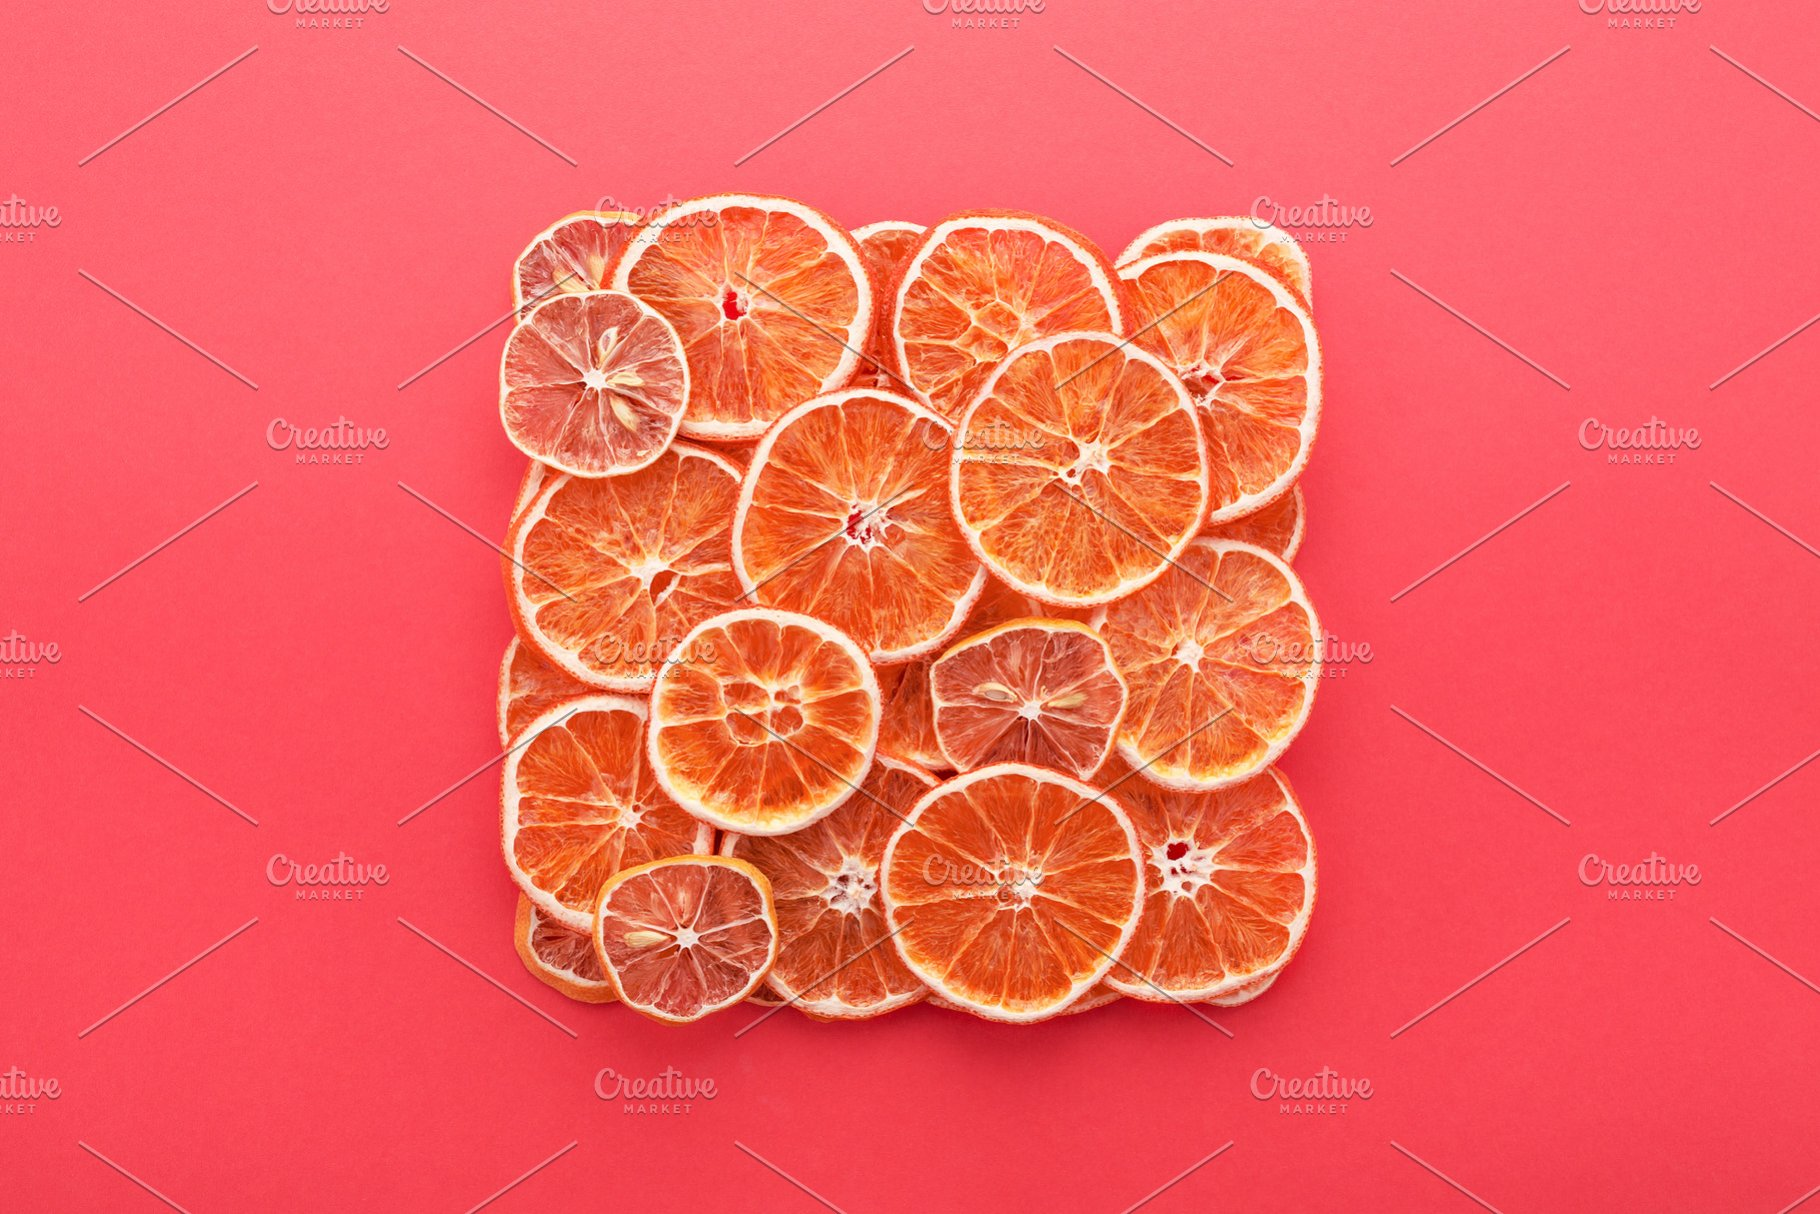 Dried Citrus Slices Lemons Oranges Abstract Photos Creative Market